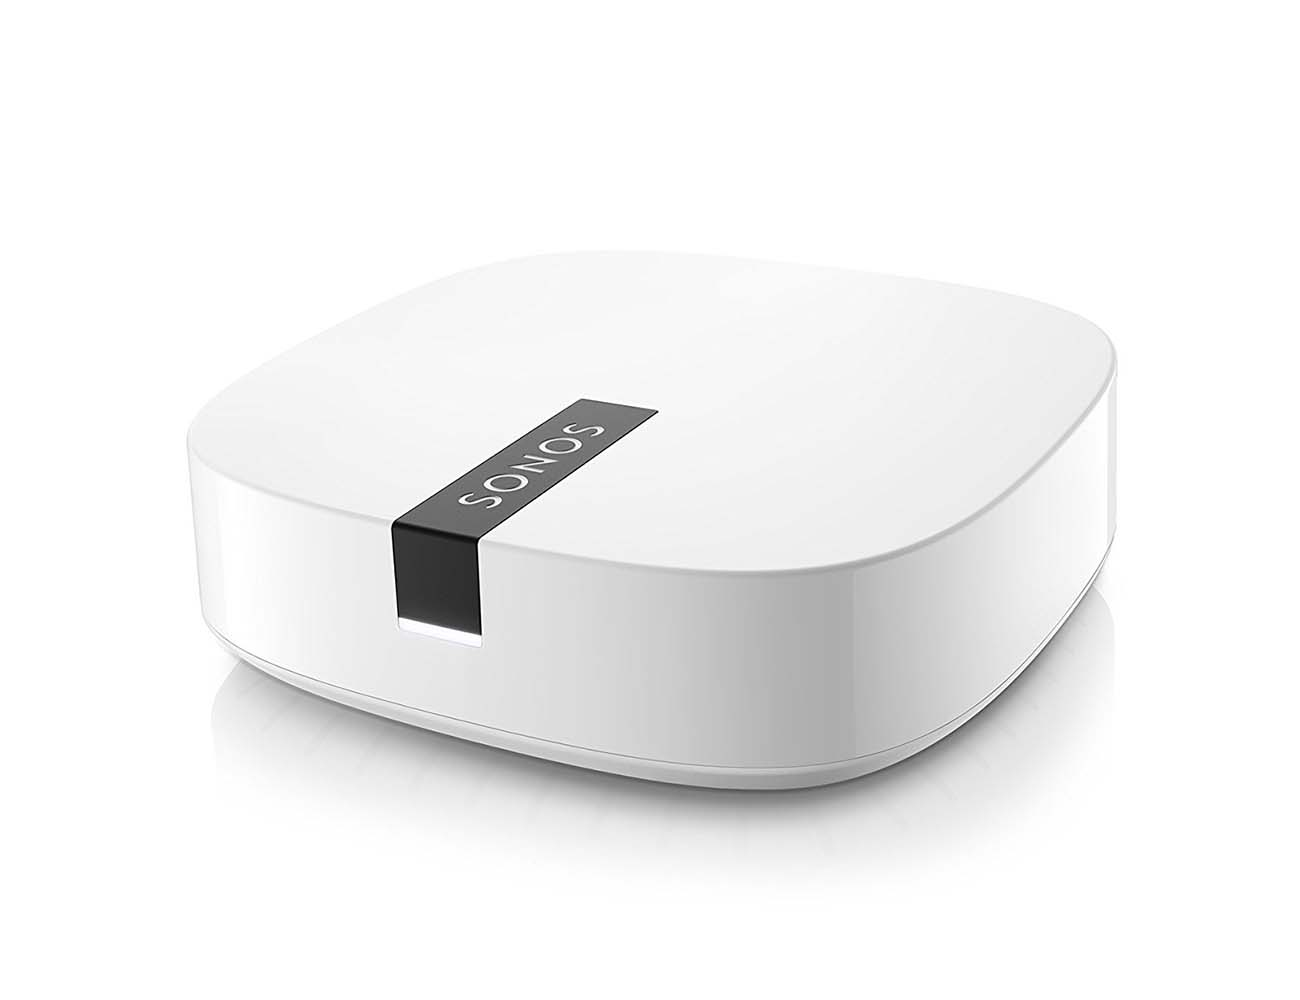 BOOST – Dedicated Wireless Network for Your Sonos System